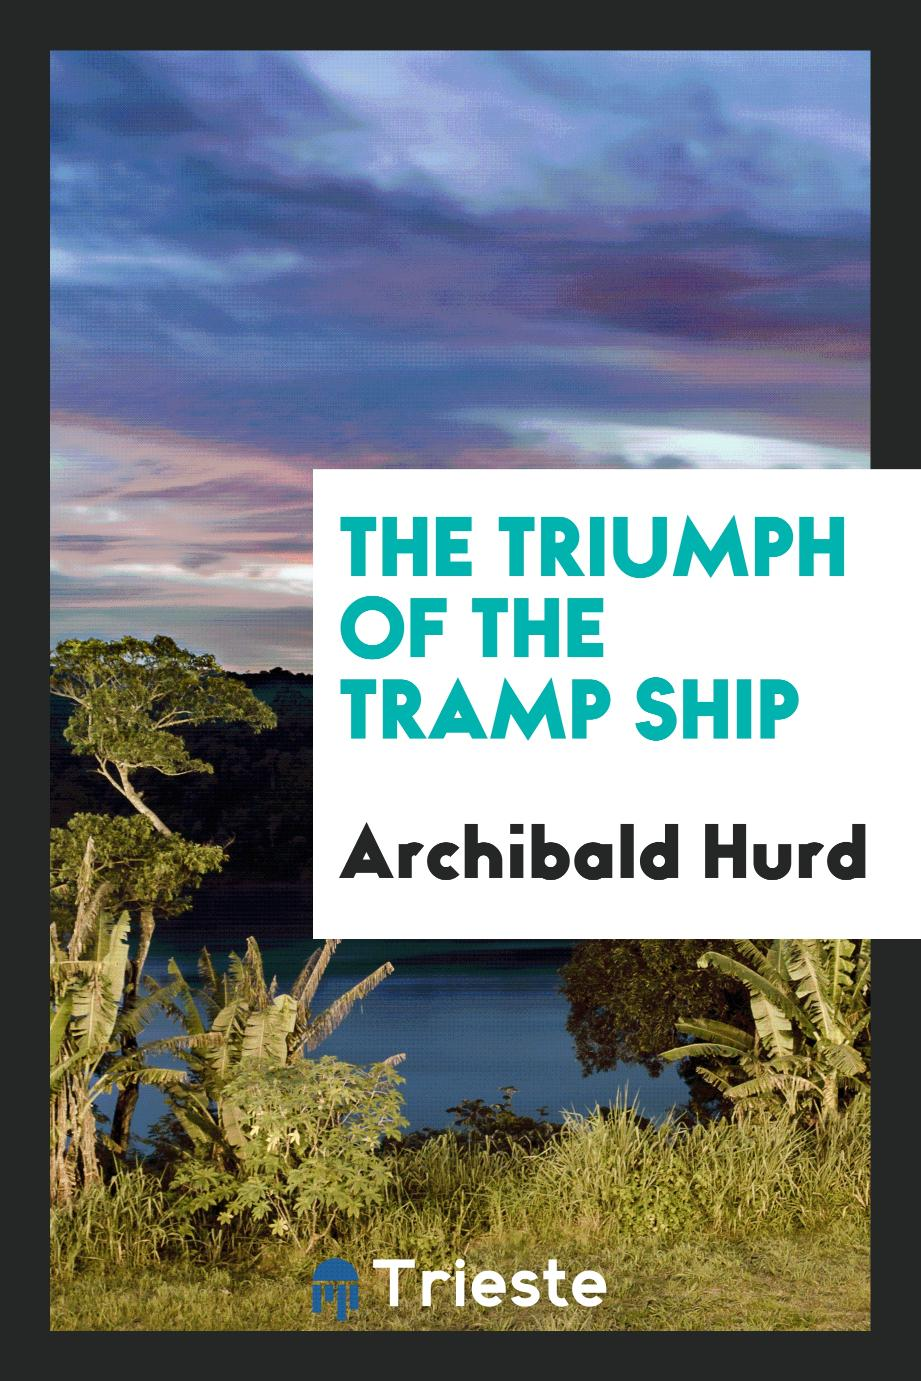 The triumph of the tramp ship